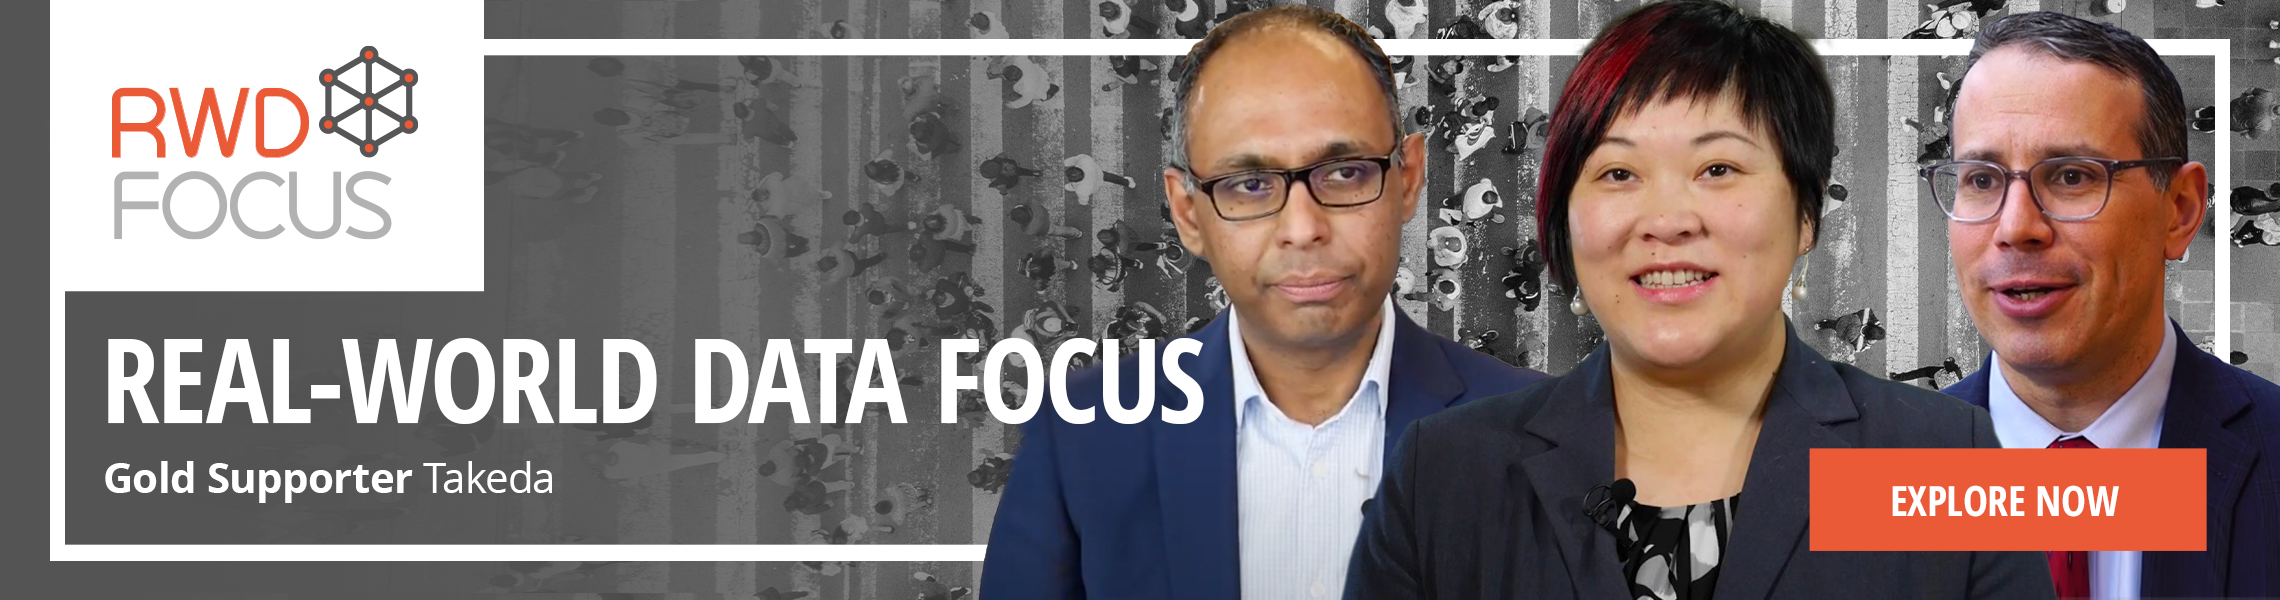 Watch the Real World Data Focus Channel